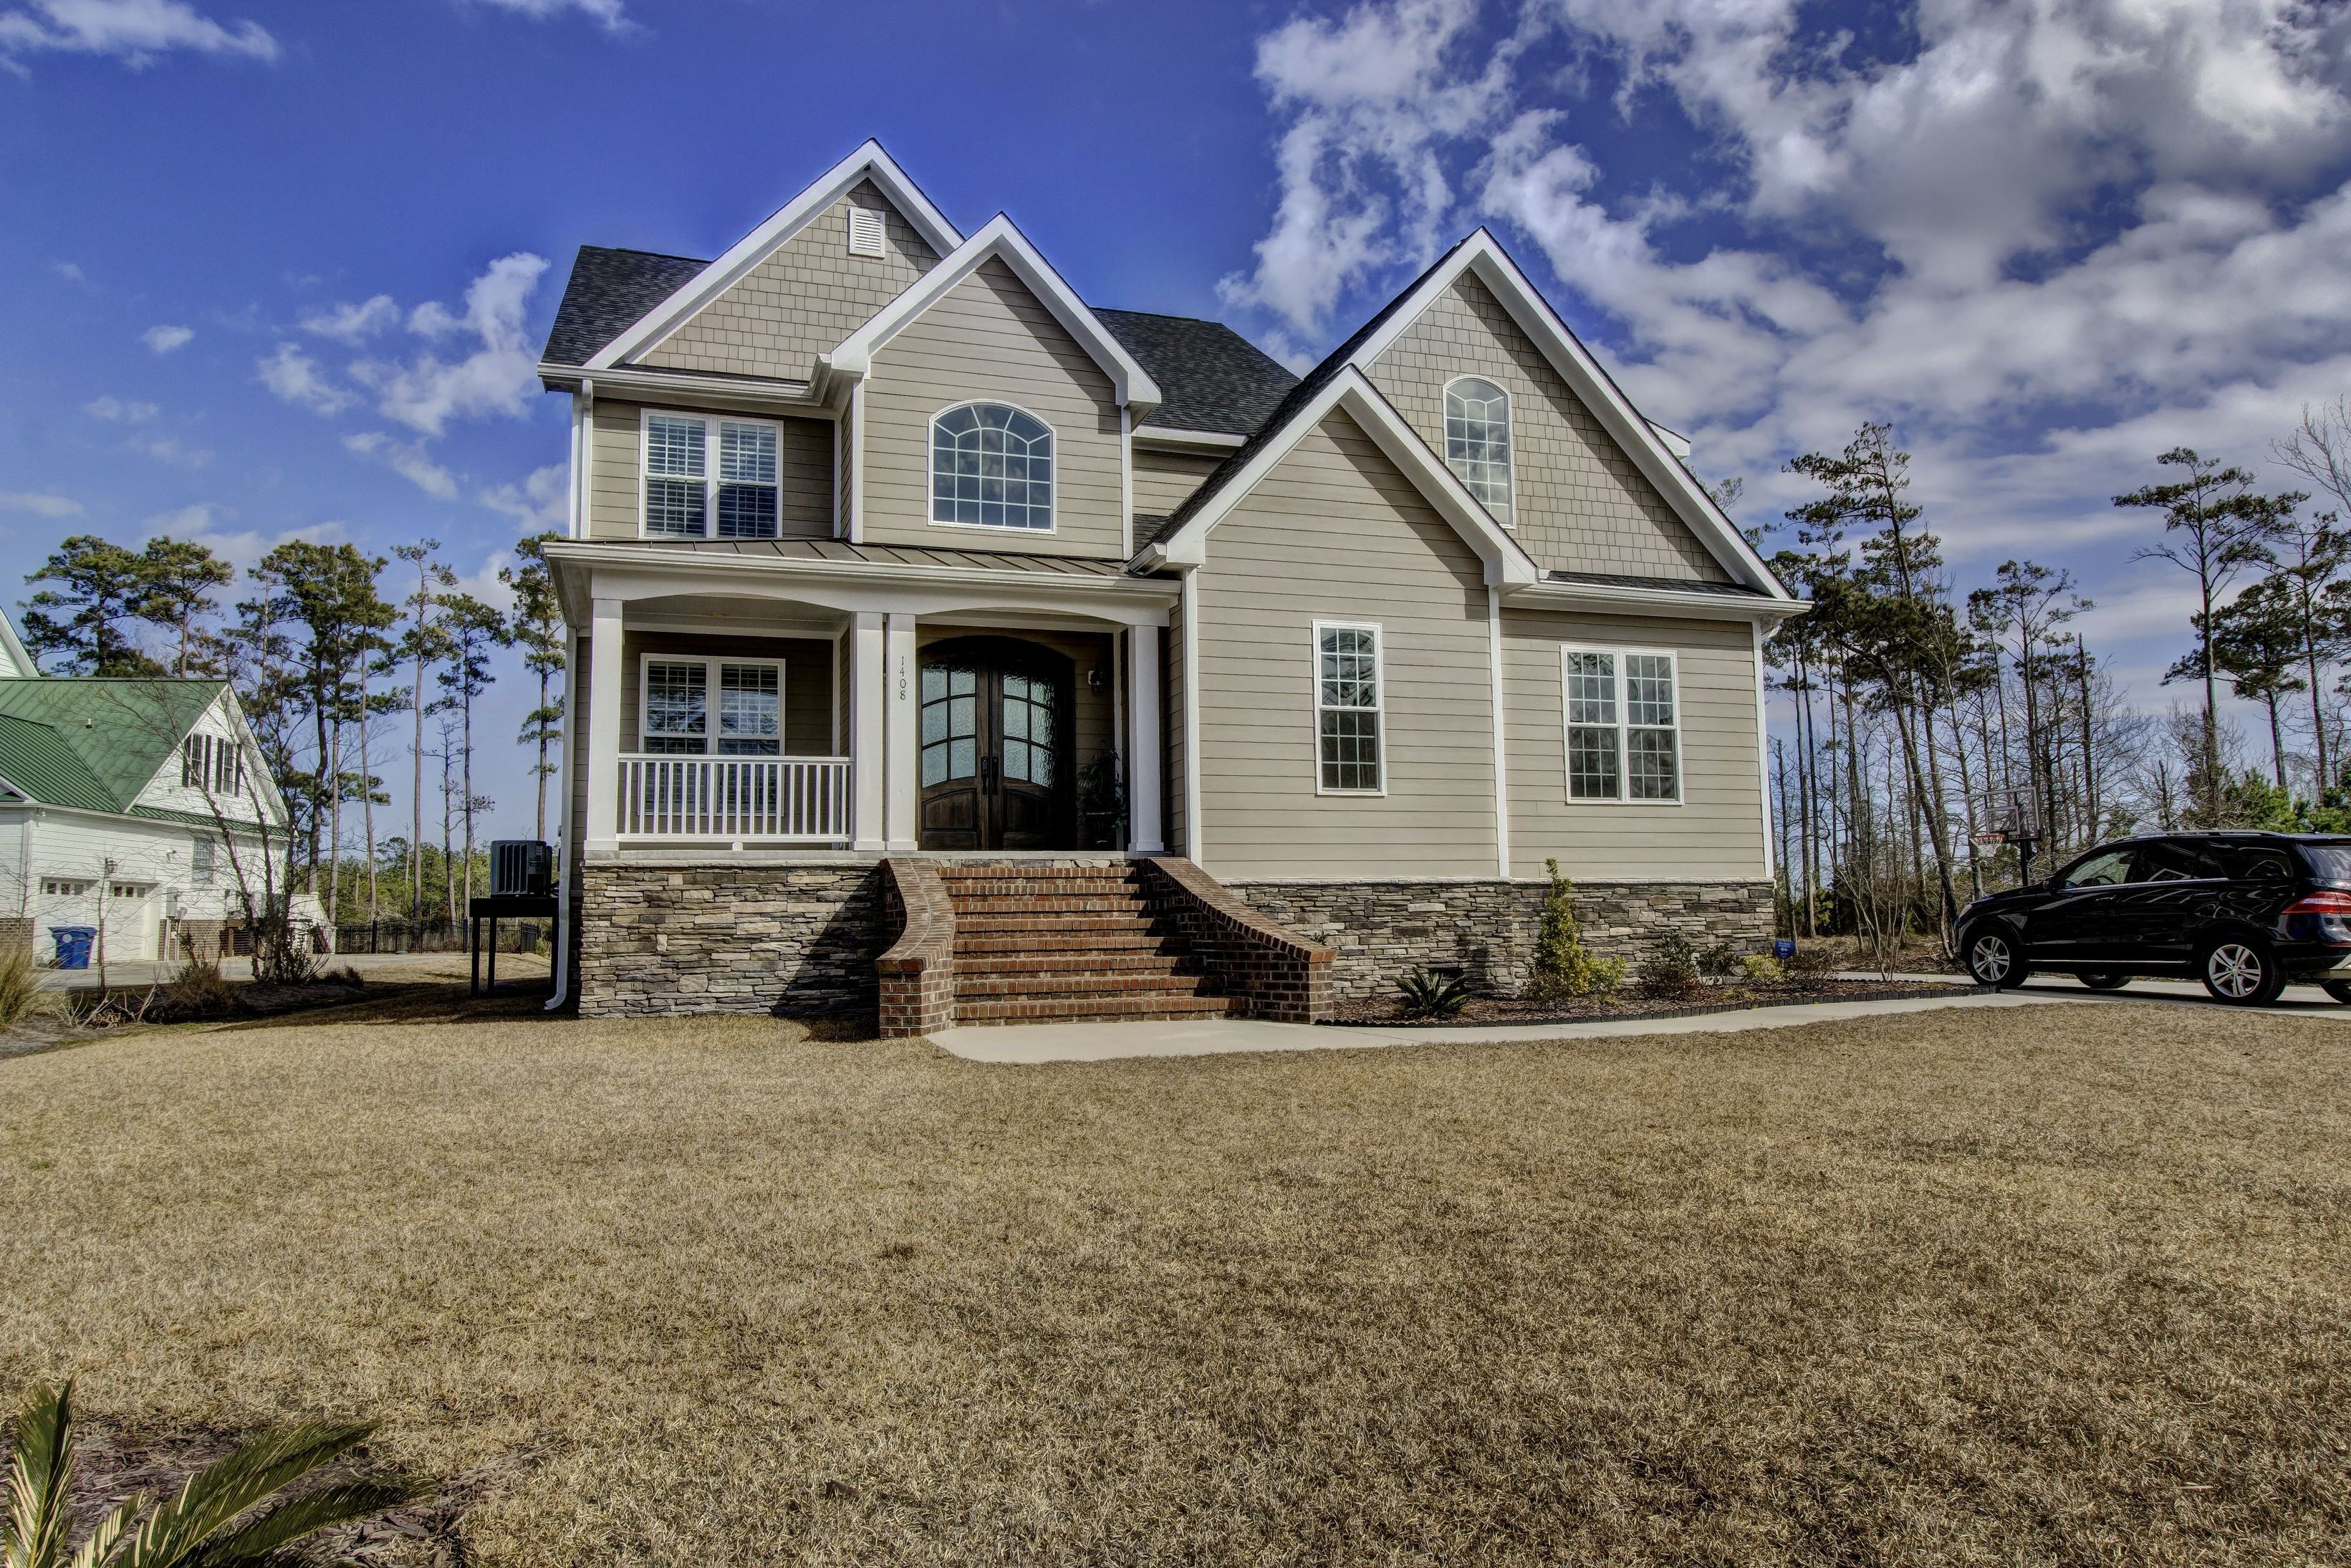 Casa unifamiliar en venta en/de 1408 Marsh Pointe, Morehead City, NC ,28557  , EUA